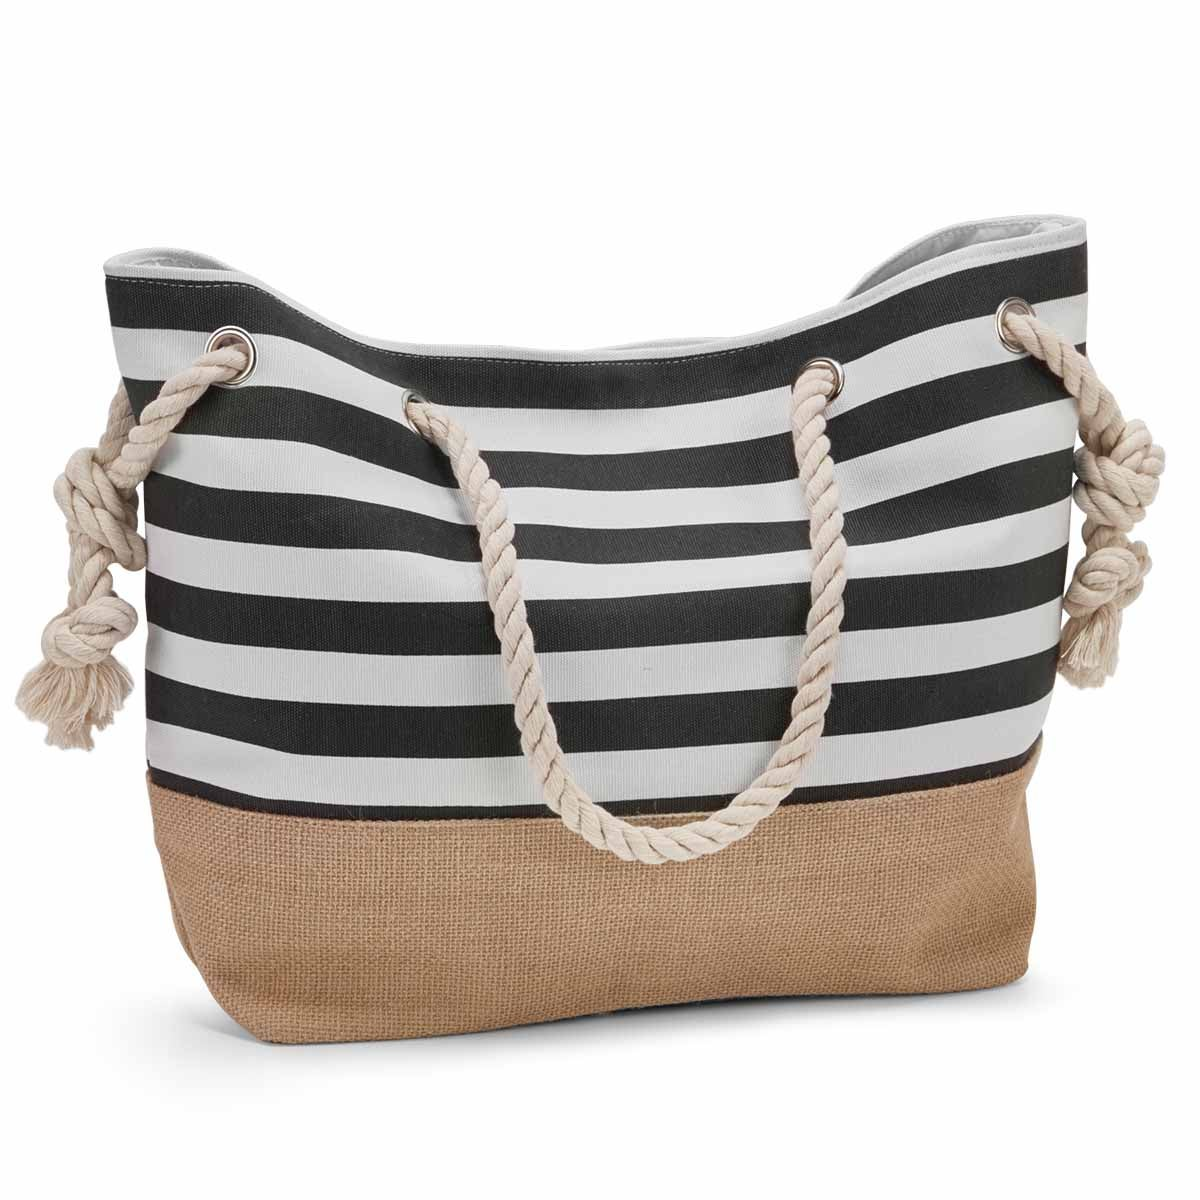 Lds blk/wht large canvas tote bag